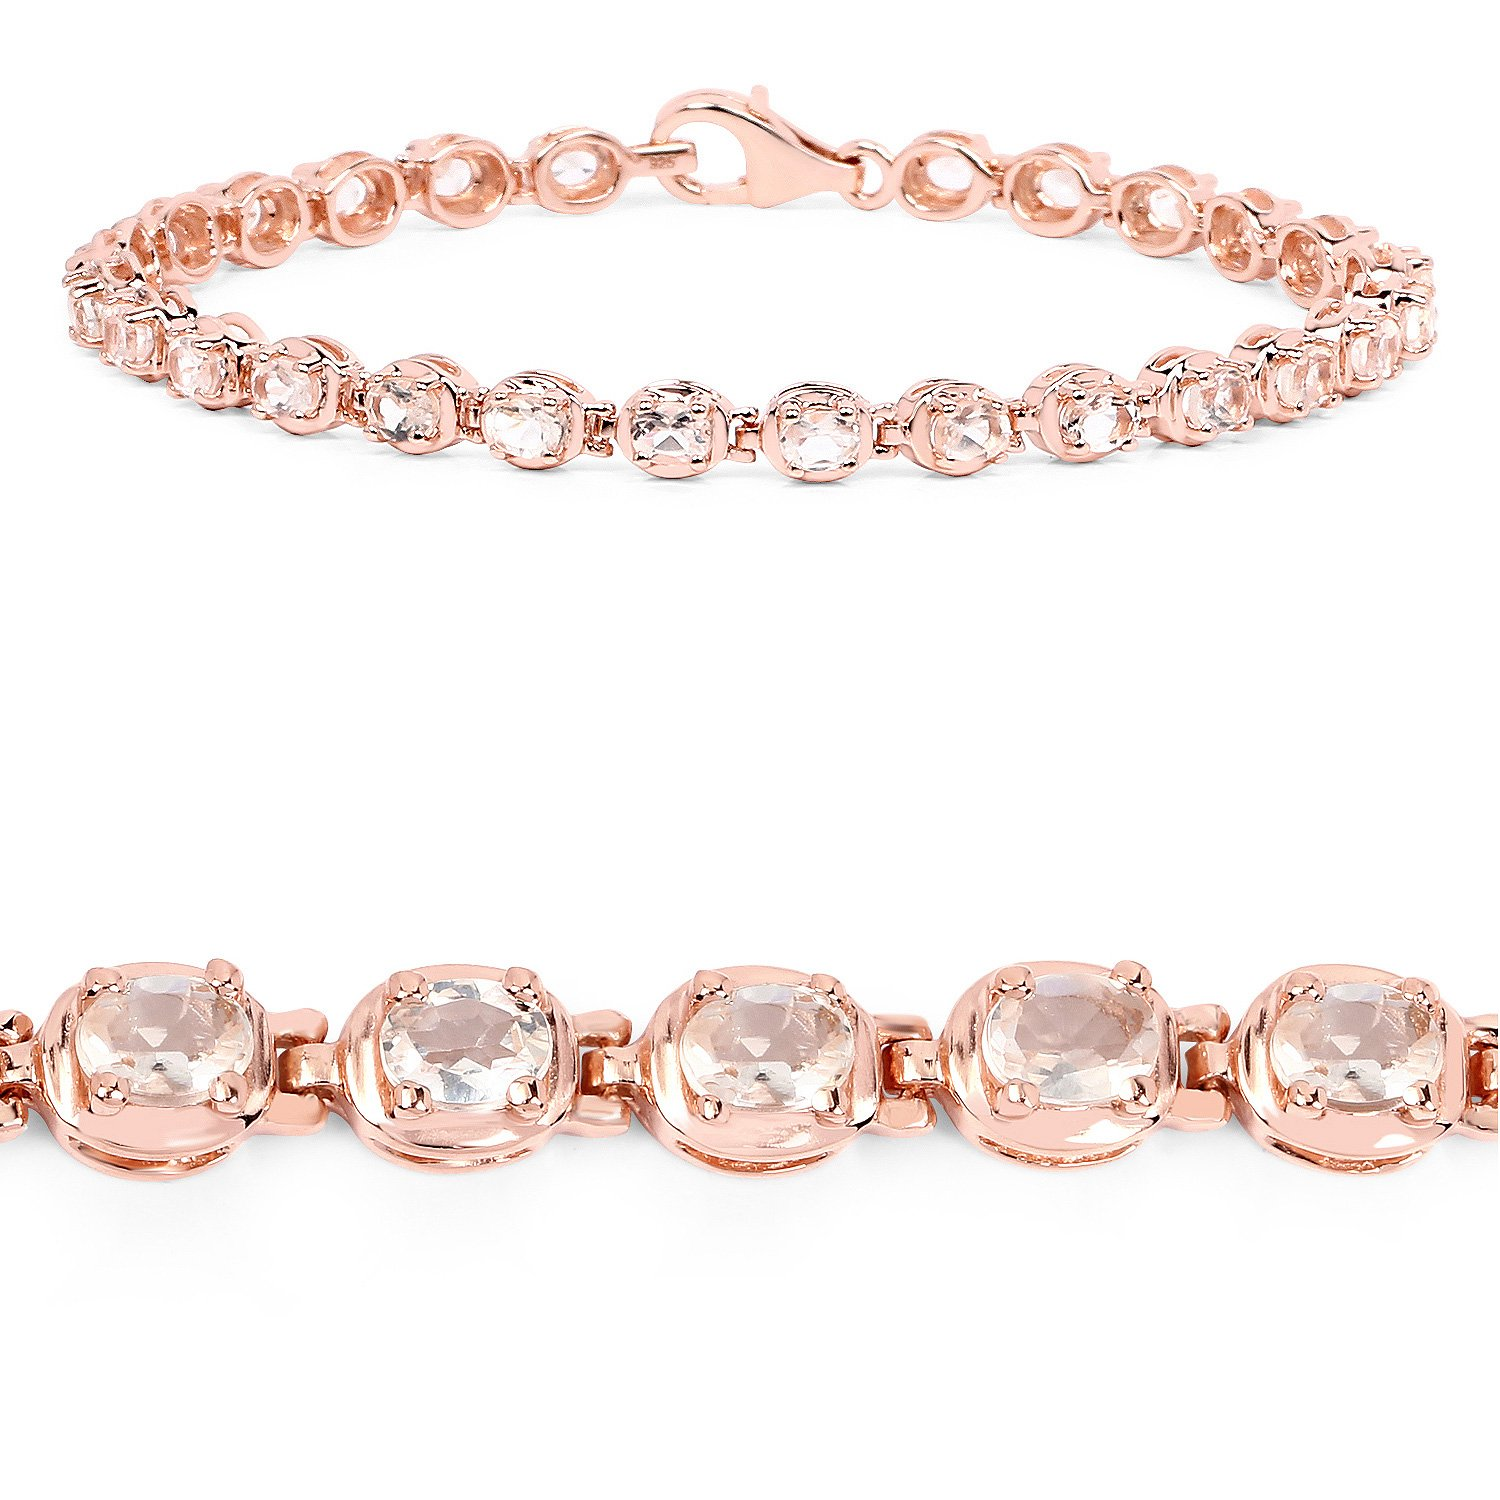 14K Rose Gold Plated 3.51 Carat Genuine Morganite Solid .925 Sterling Silver Bracelet